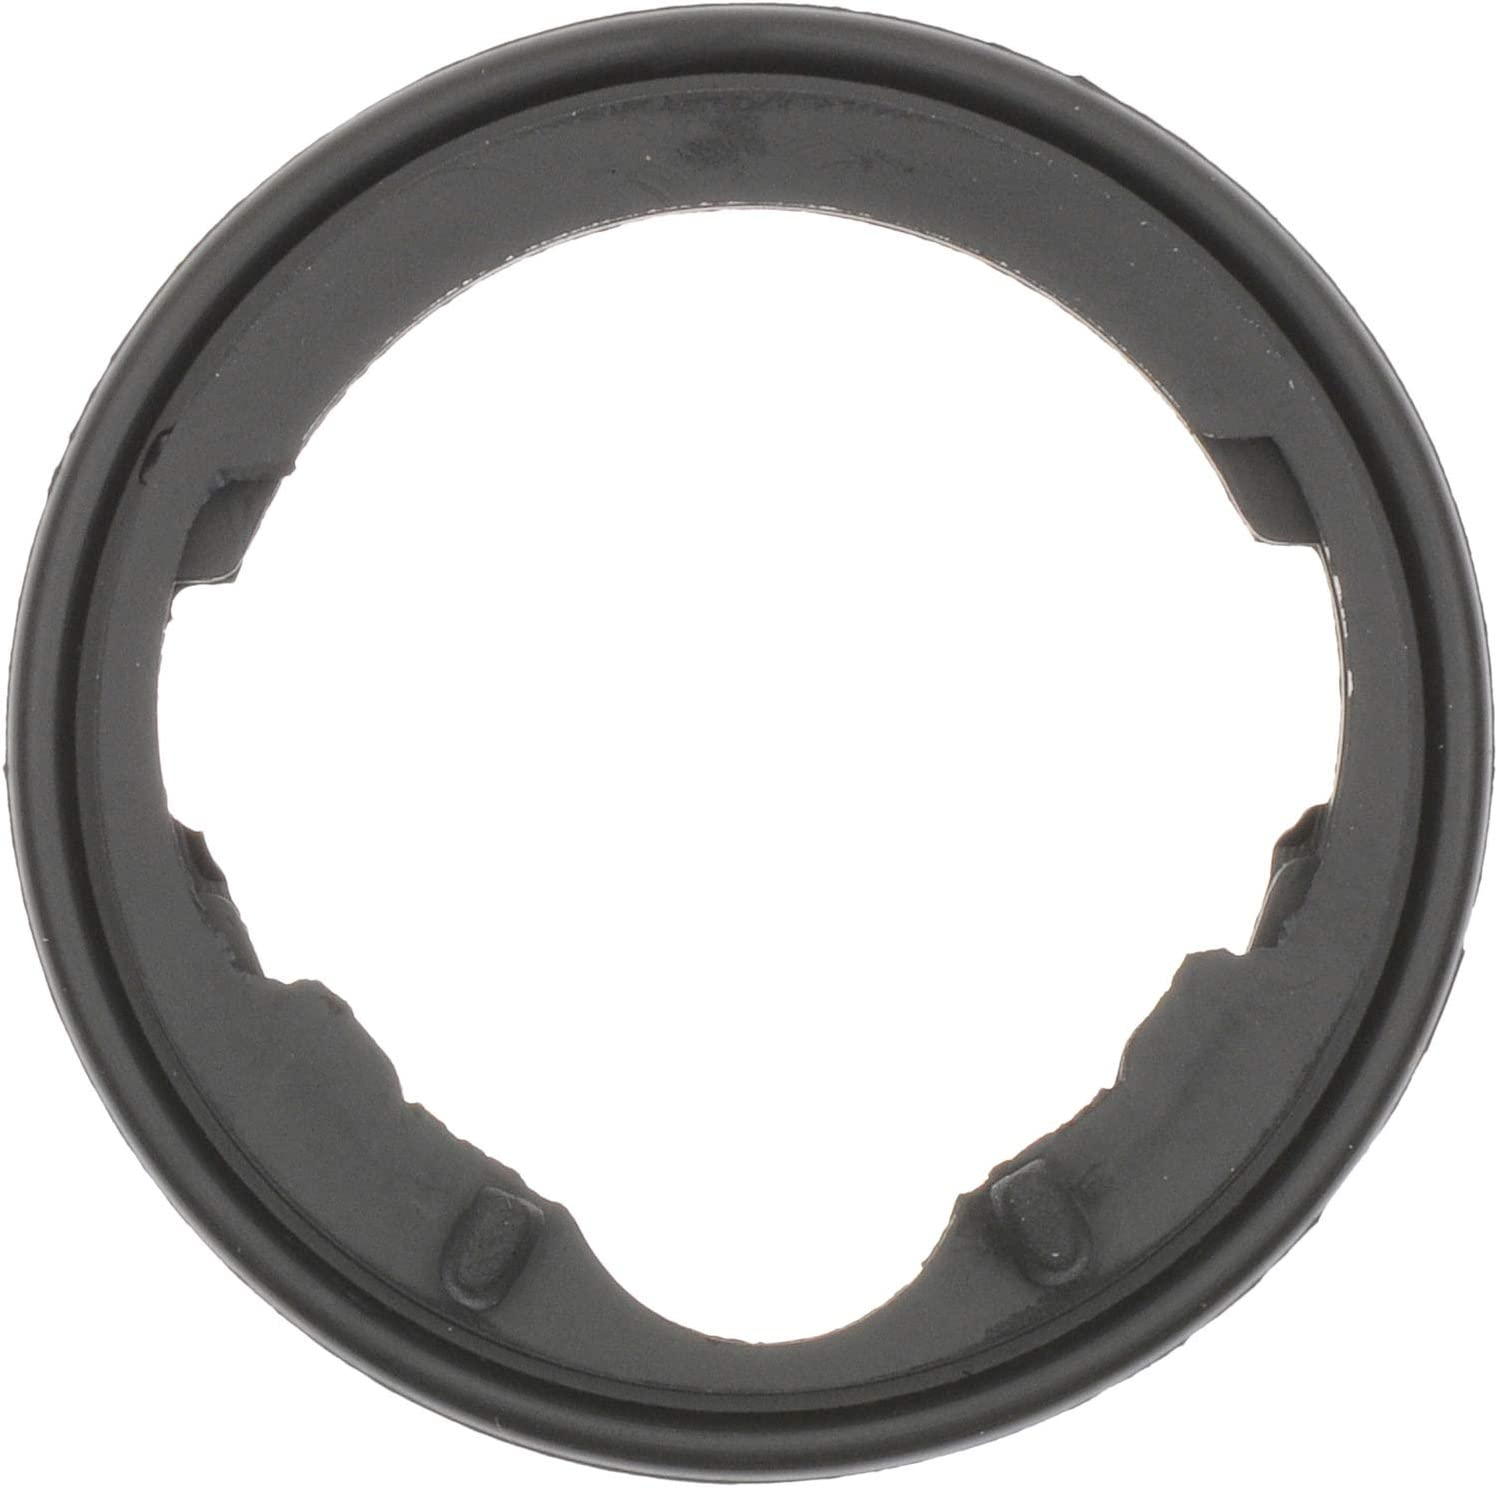 Victor Reinz 41-10429-00 Engine Coolant Thermostat Housing Seal